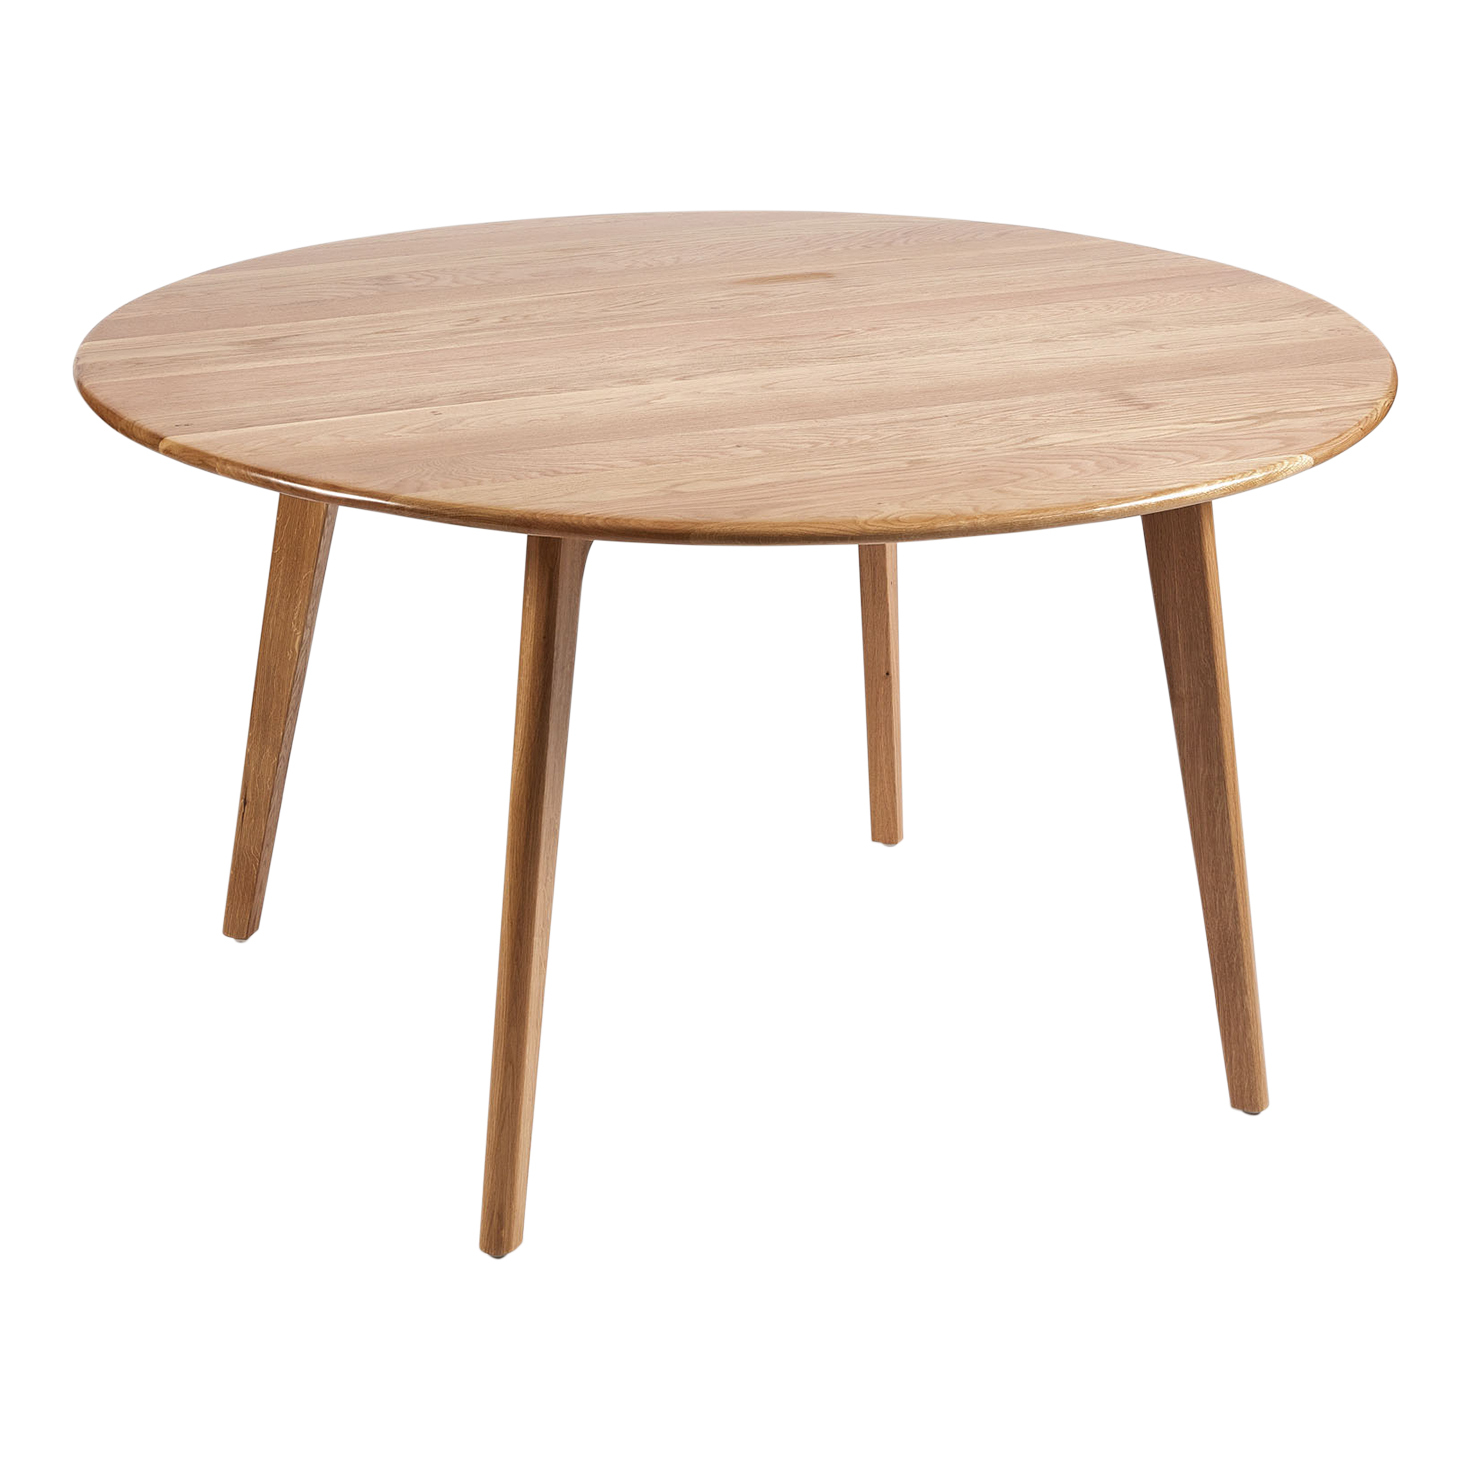 Sku lide1002 convair oak round dining table is also sometimes listed under the following manufacturer numbers 6ct110 6ct130